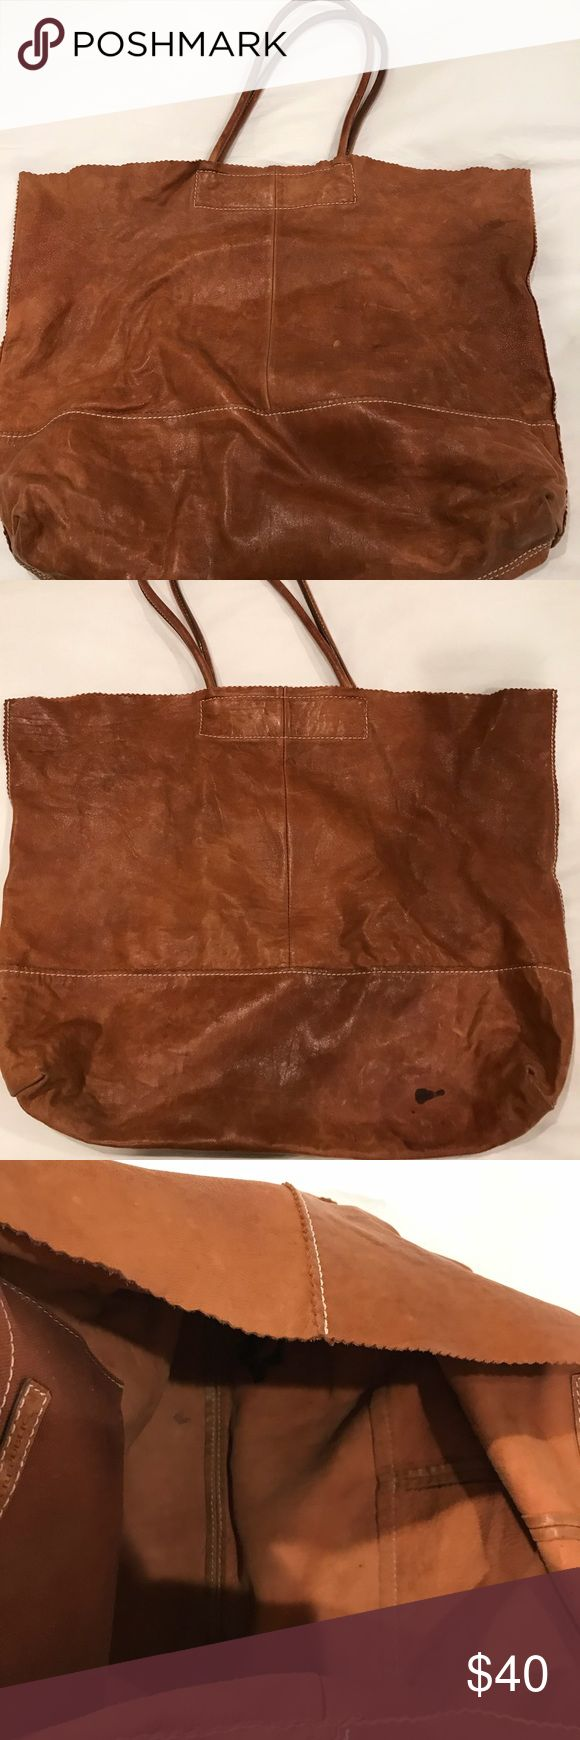 Banana Republic Brown Leather Tote Bag Chestnut brown leather with long flexible handles- inside pocket - magnetic closure - very lightweight and easy to carry - flaws as noted Banana Republic Bags Totes